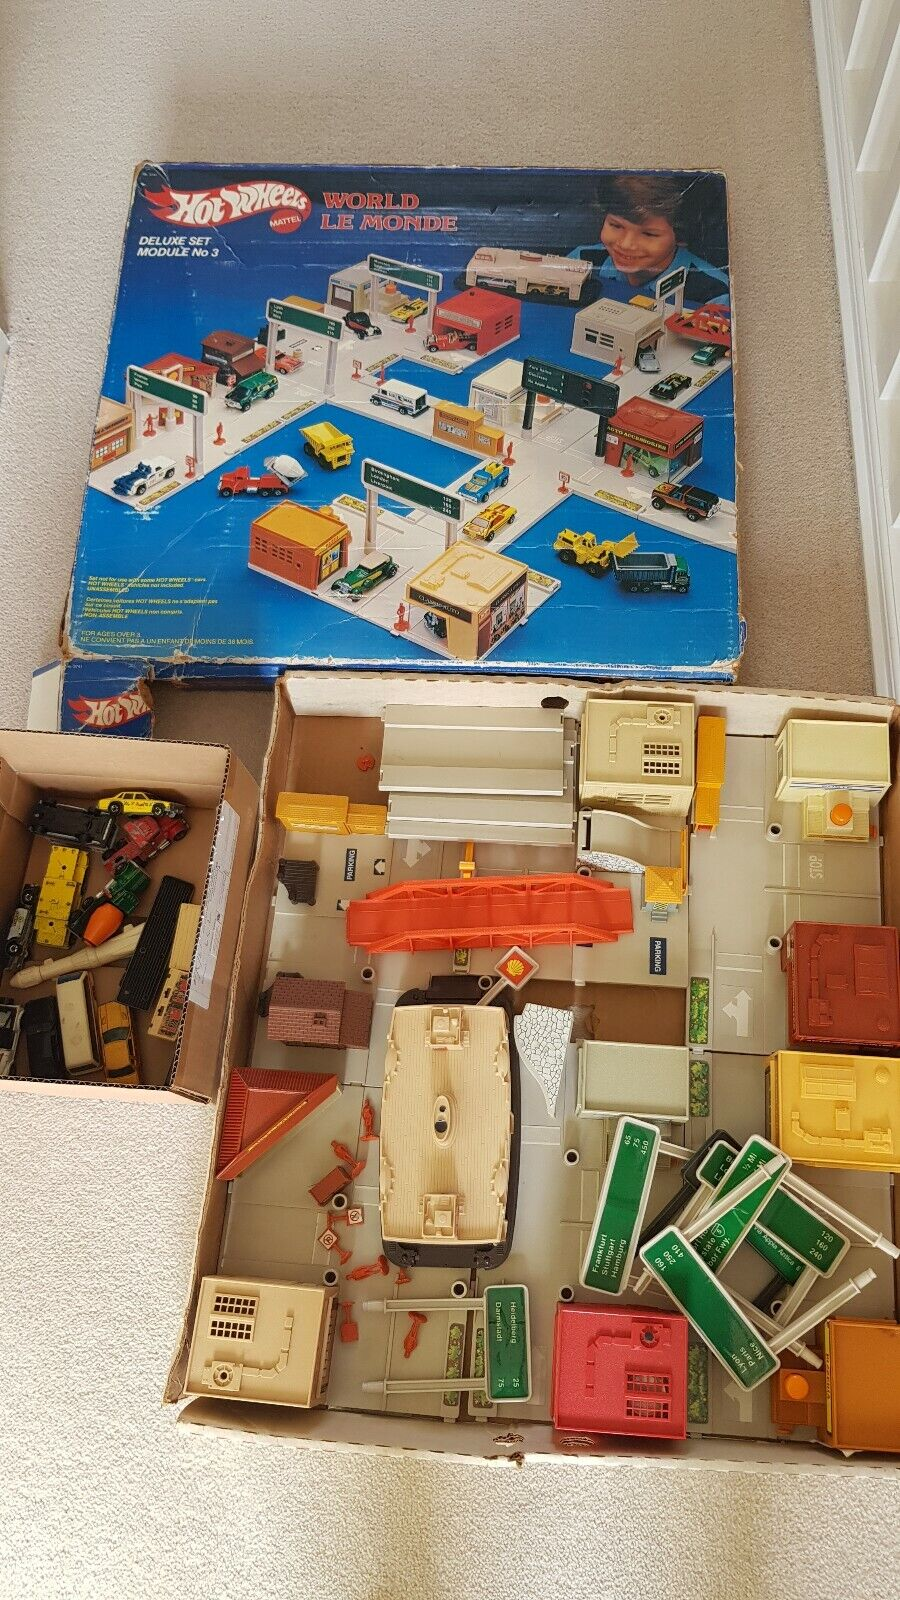 1980s HOT WHEELS WORLD, LE MONDE DELUXE MODULE 3 PLAYSET WITH CARS, MATTEL